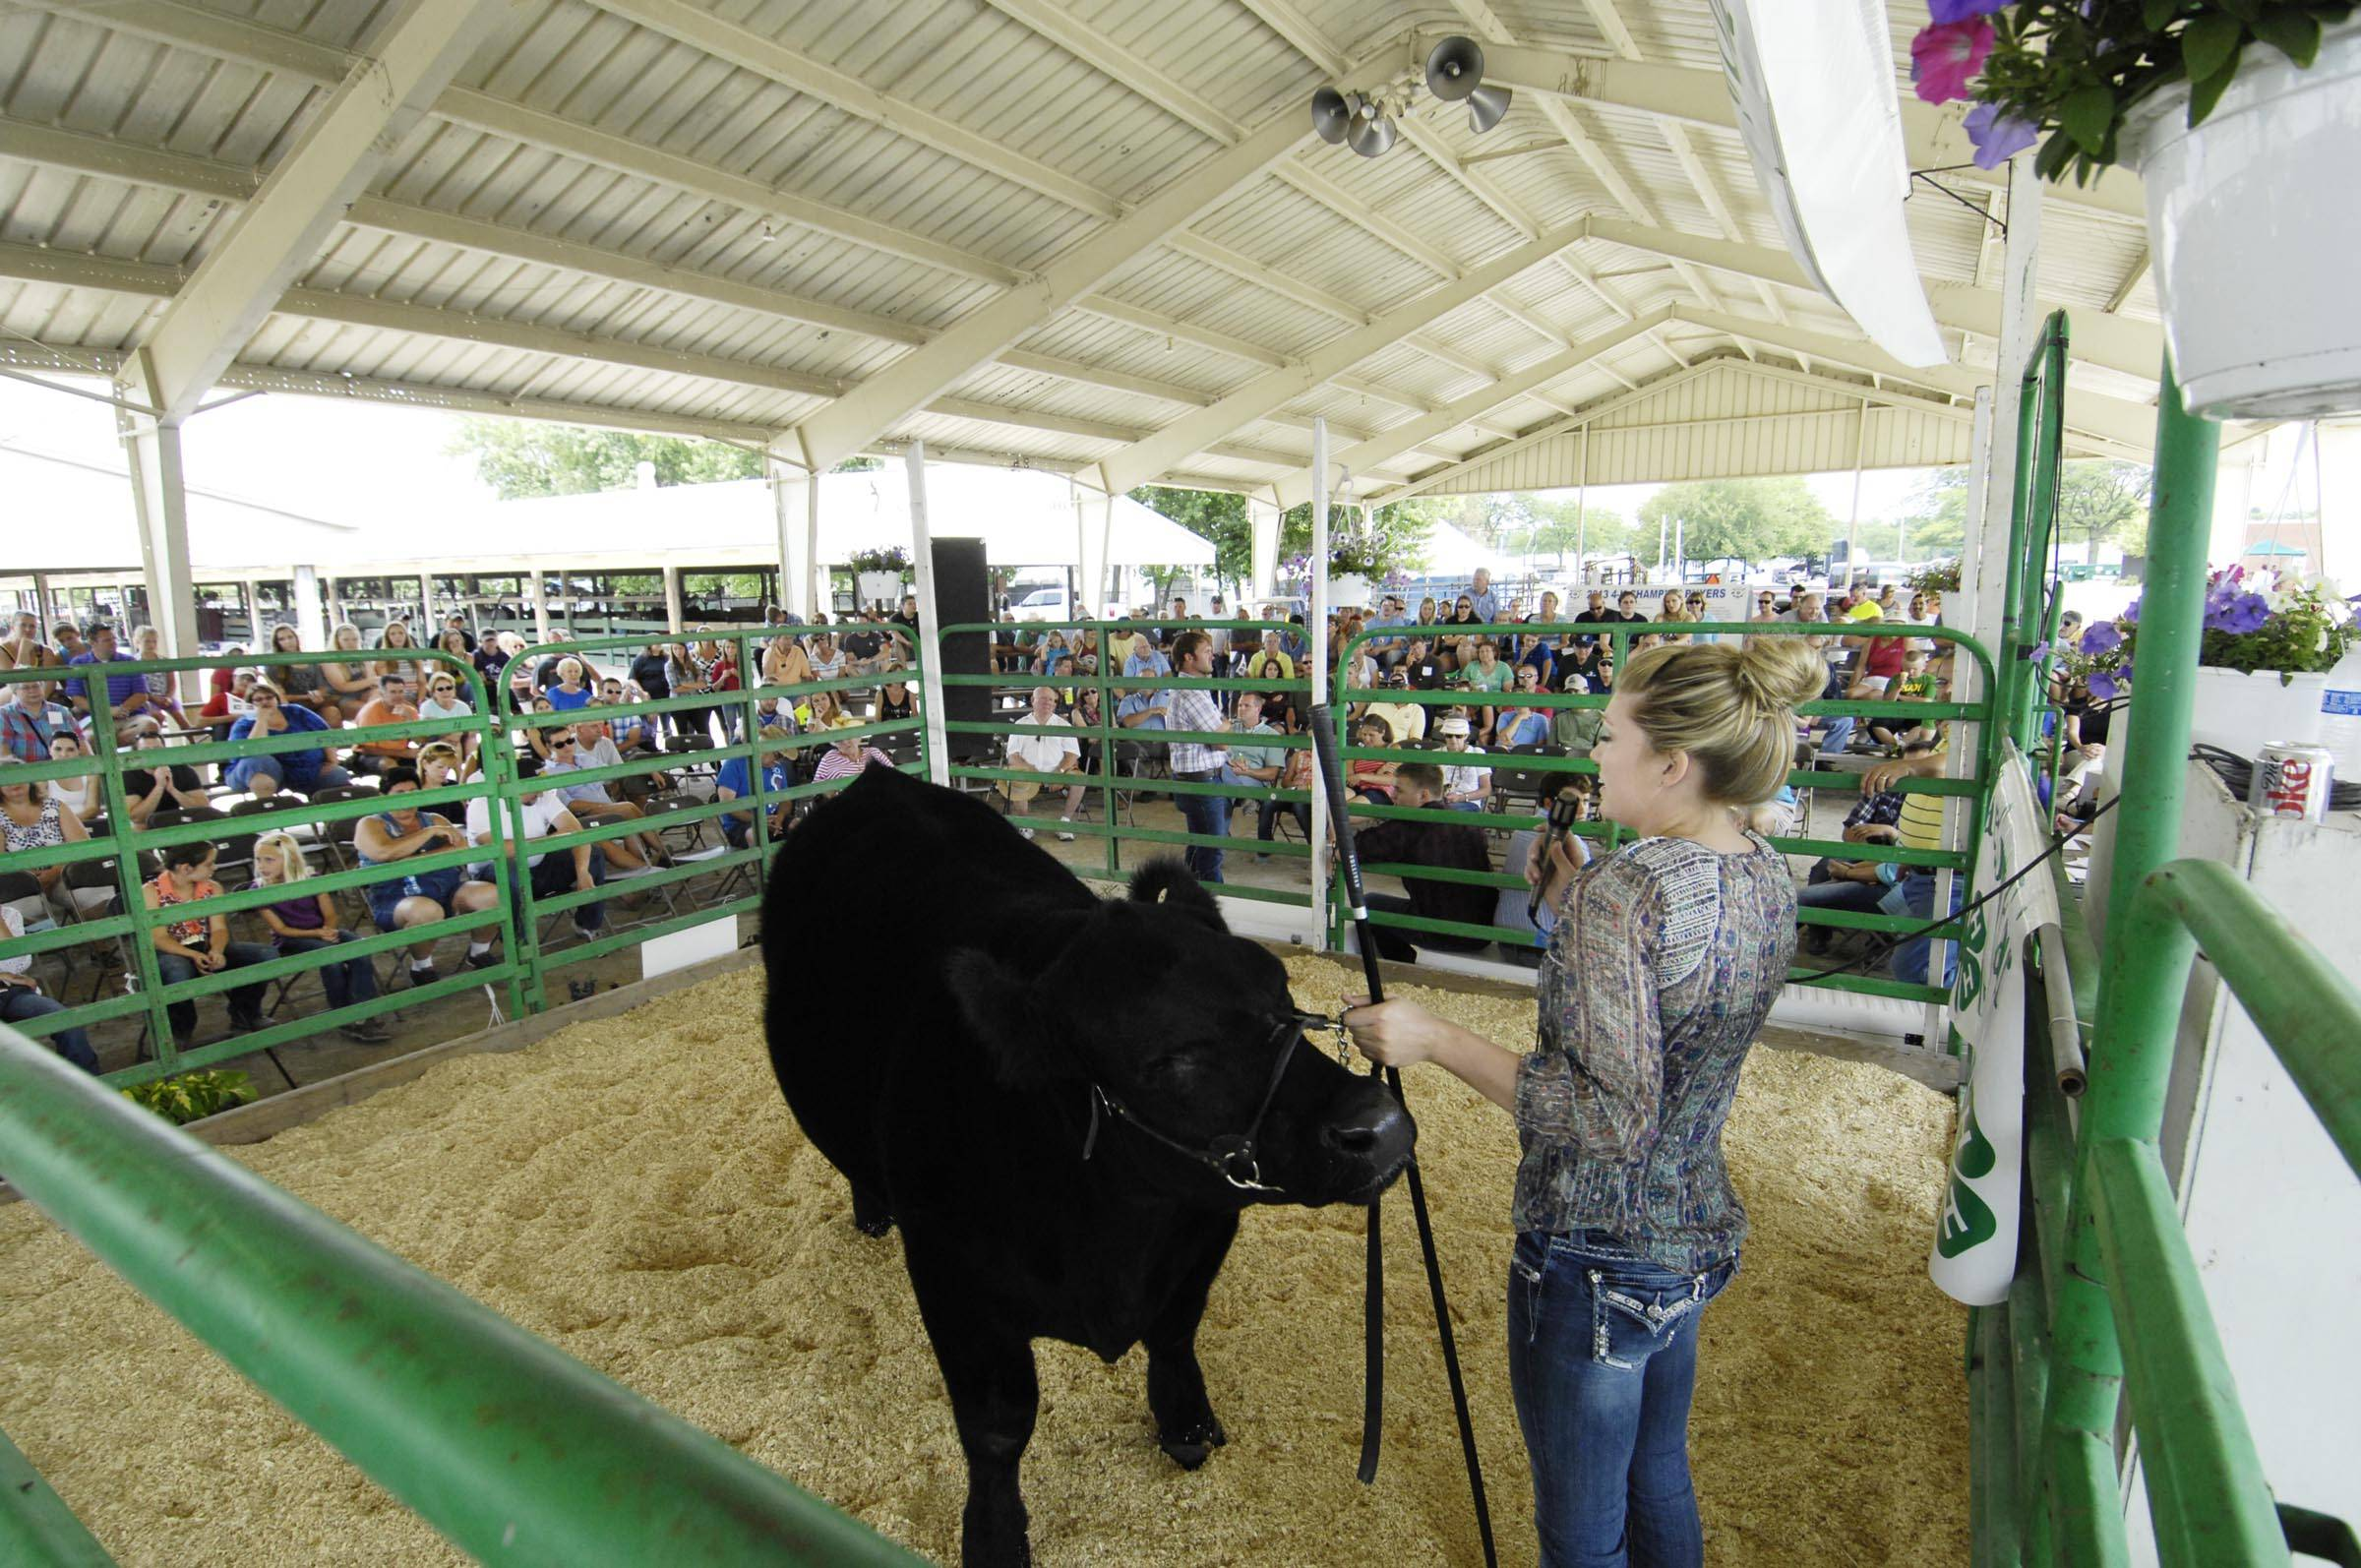 Danielle Engel begins to tear up as she thanks the crowd for support Sunday in the Blue Ribbon livestock arena at the Kane County Fair. Her 1,305-pound steer won grand champion and she sold it for $3.30 a pound in her last 4-H competition.